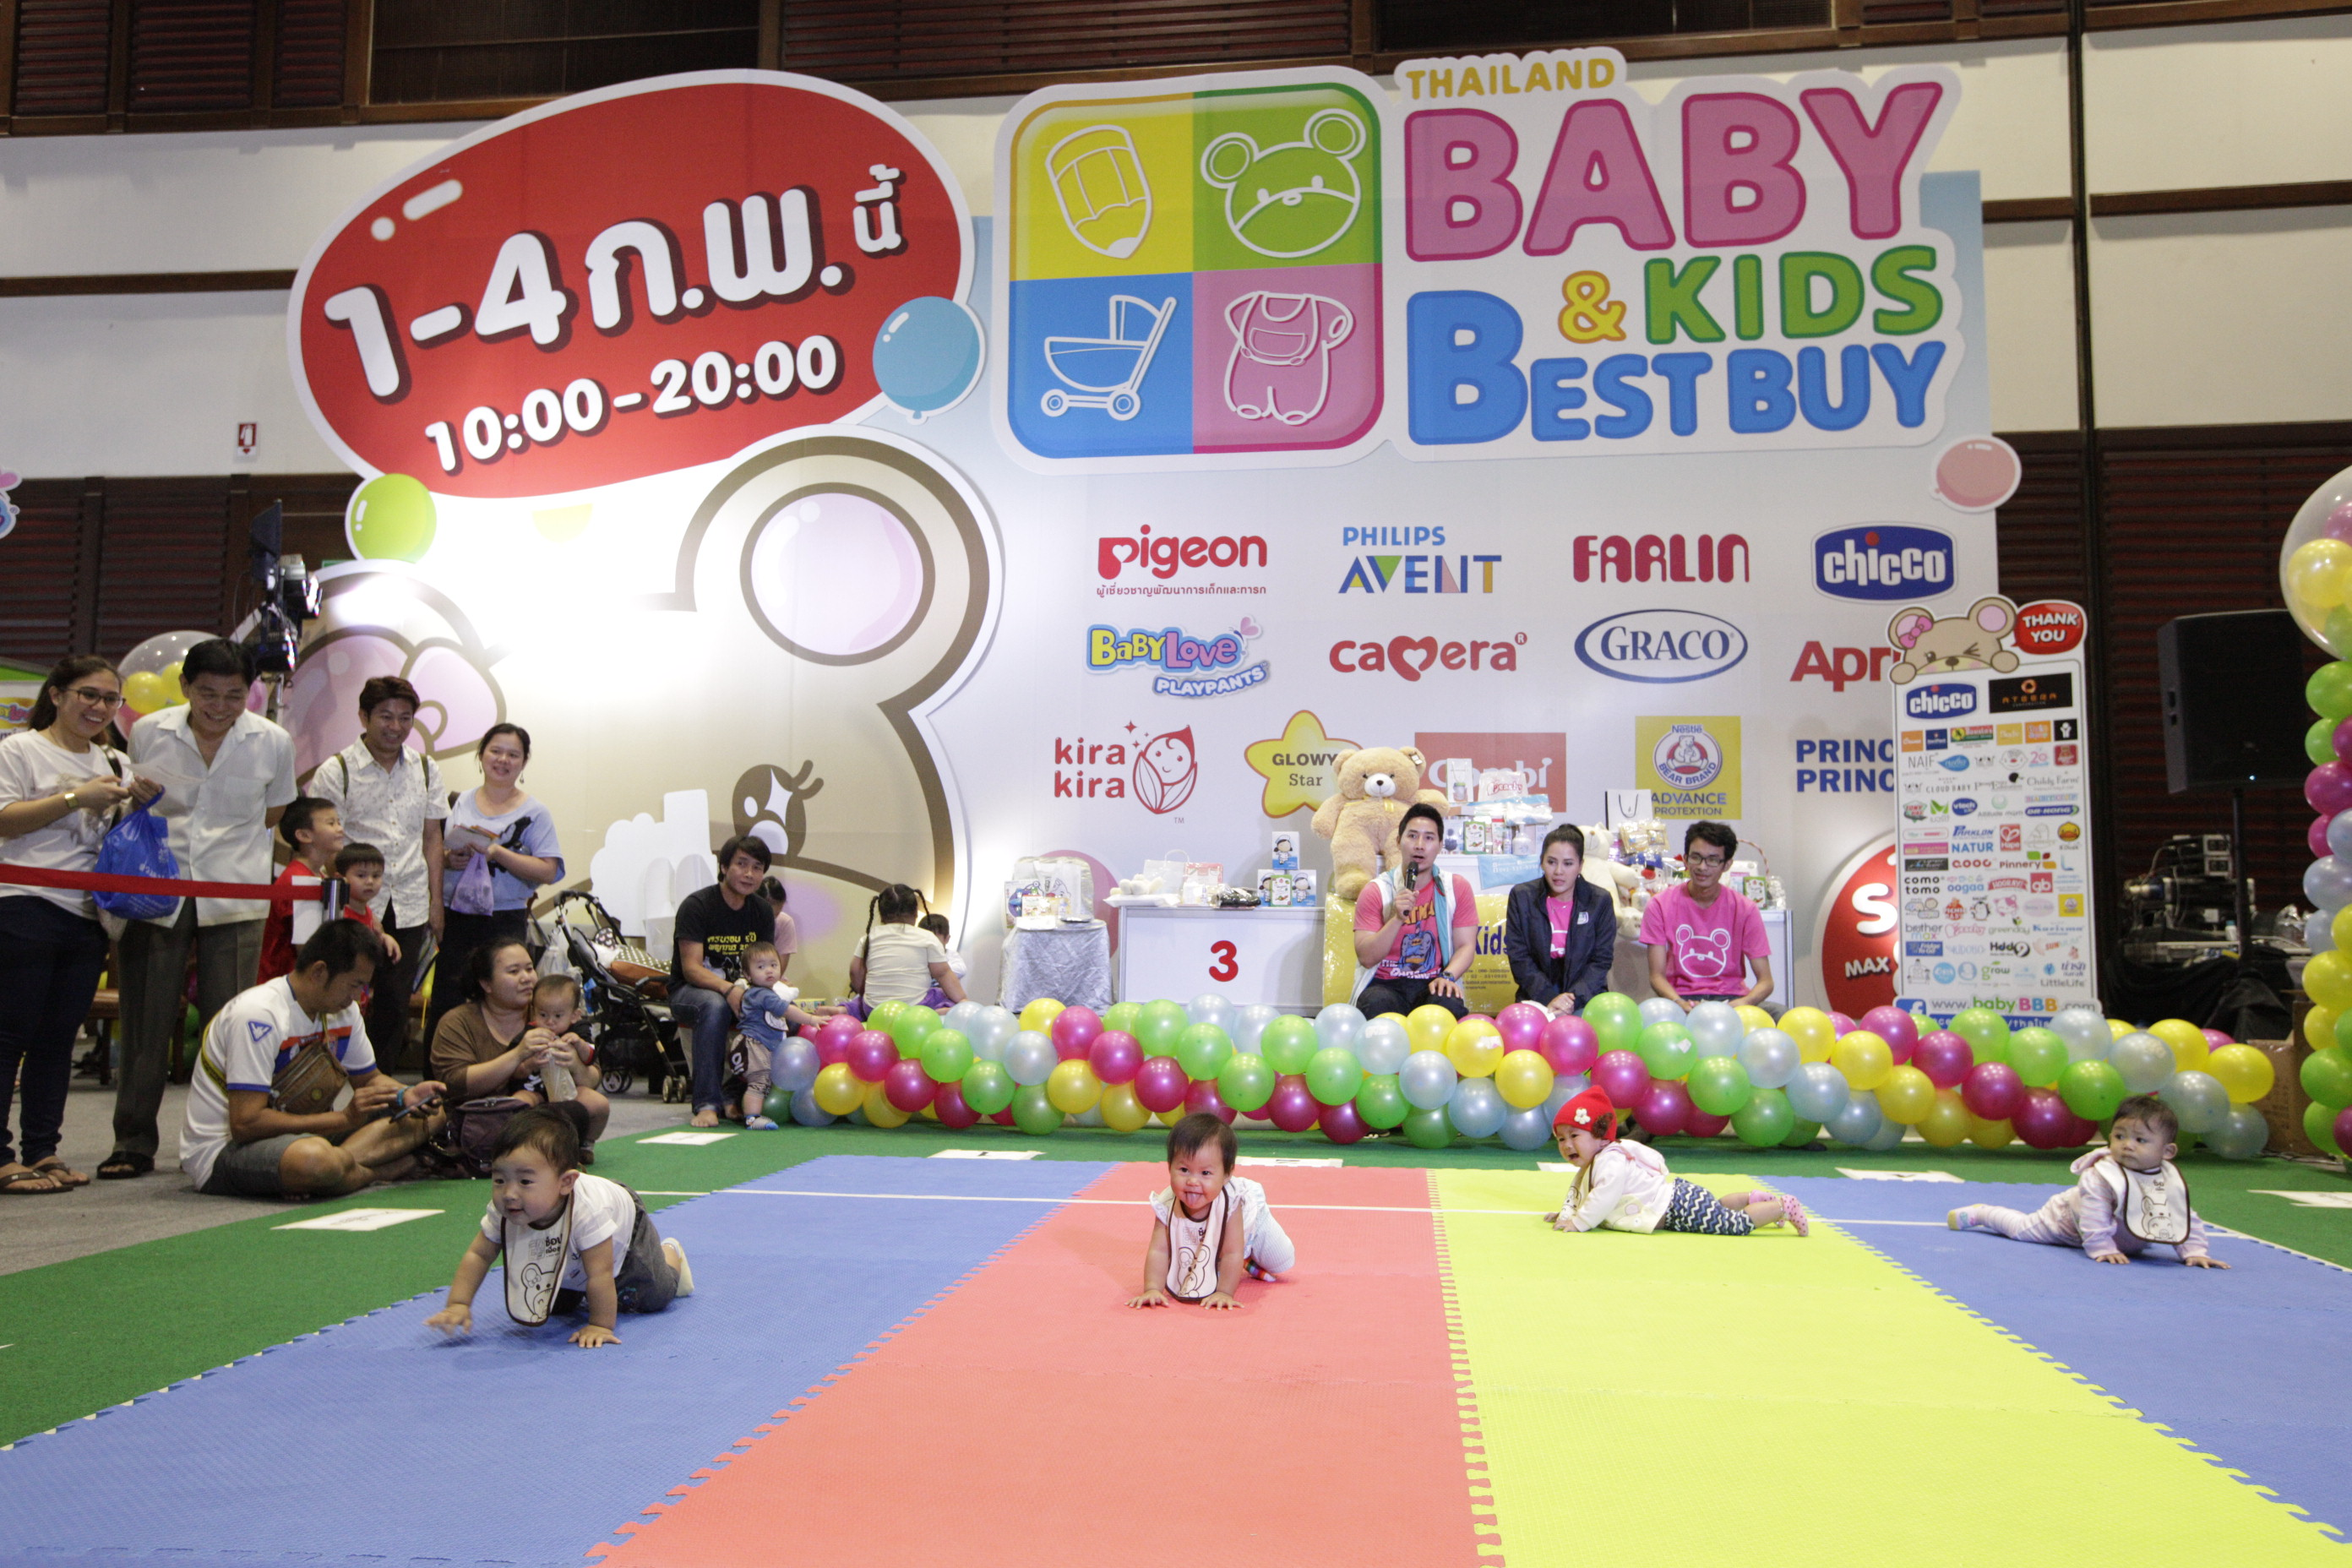 Thailand Baby & Kids Best Buy ครั้งที่ 29